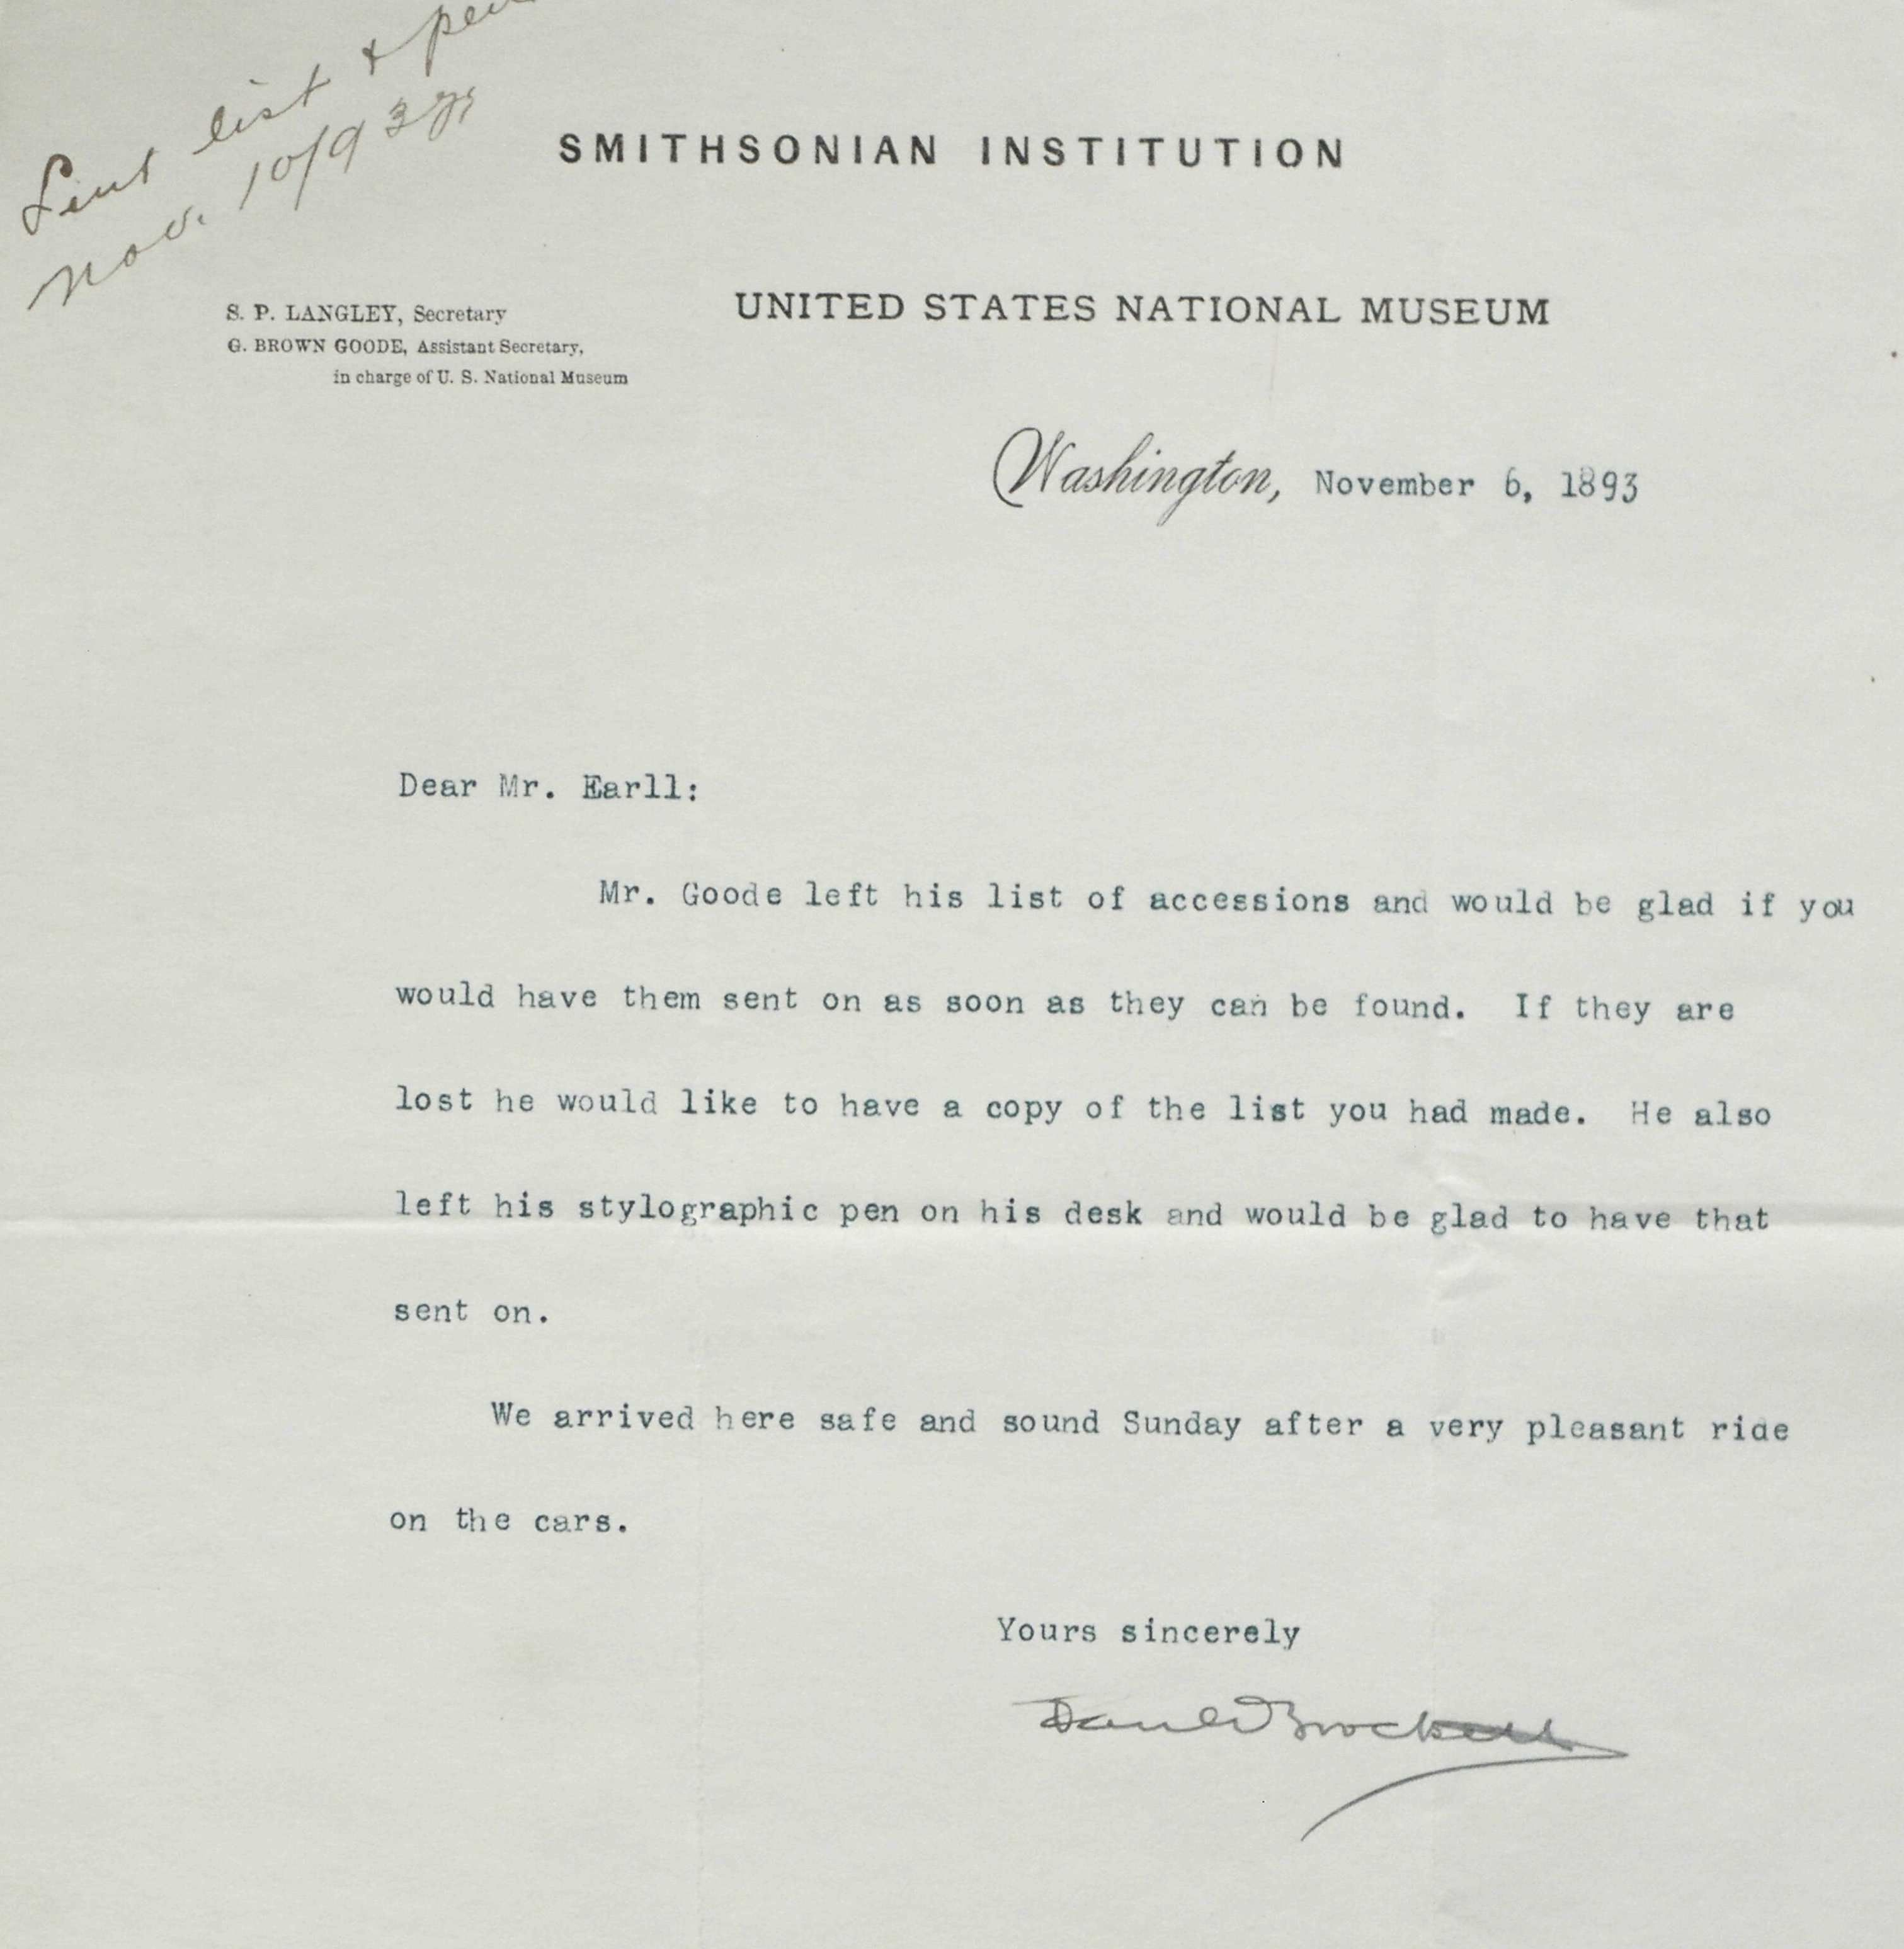 Letter to R. Edward Earll requesting the return of Mr. Goode's list of accessions and stylographic p